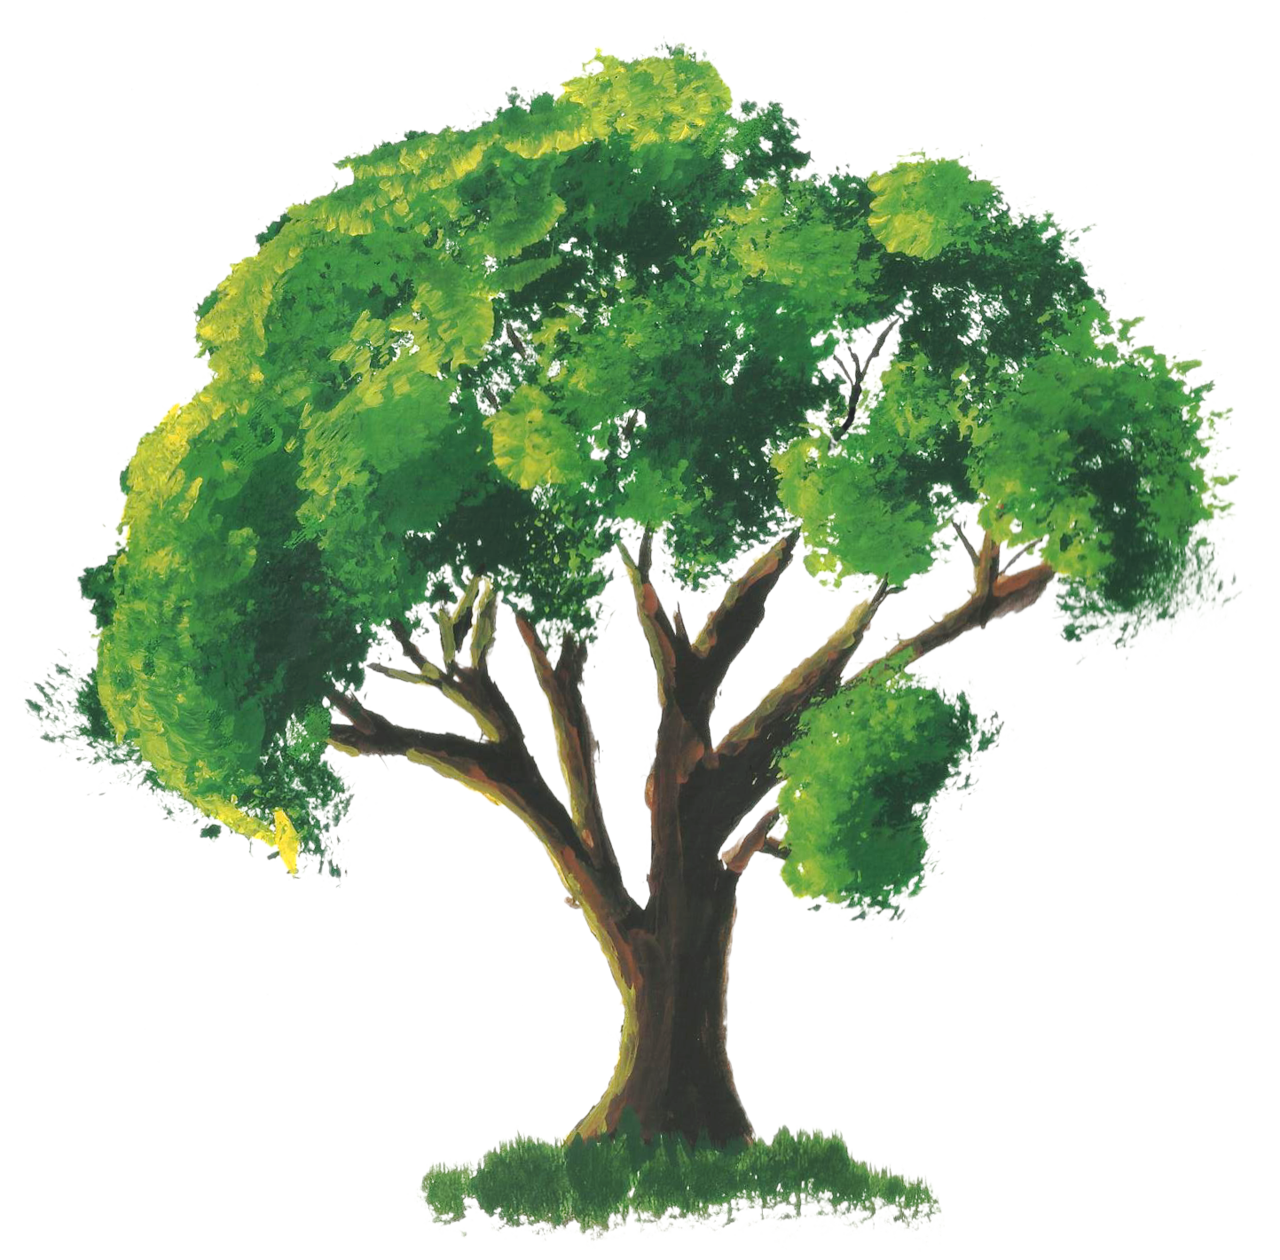 stock_tree_painting_by_legendofficiald6fb14a.png (1280